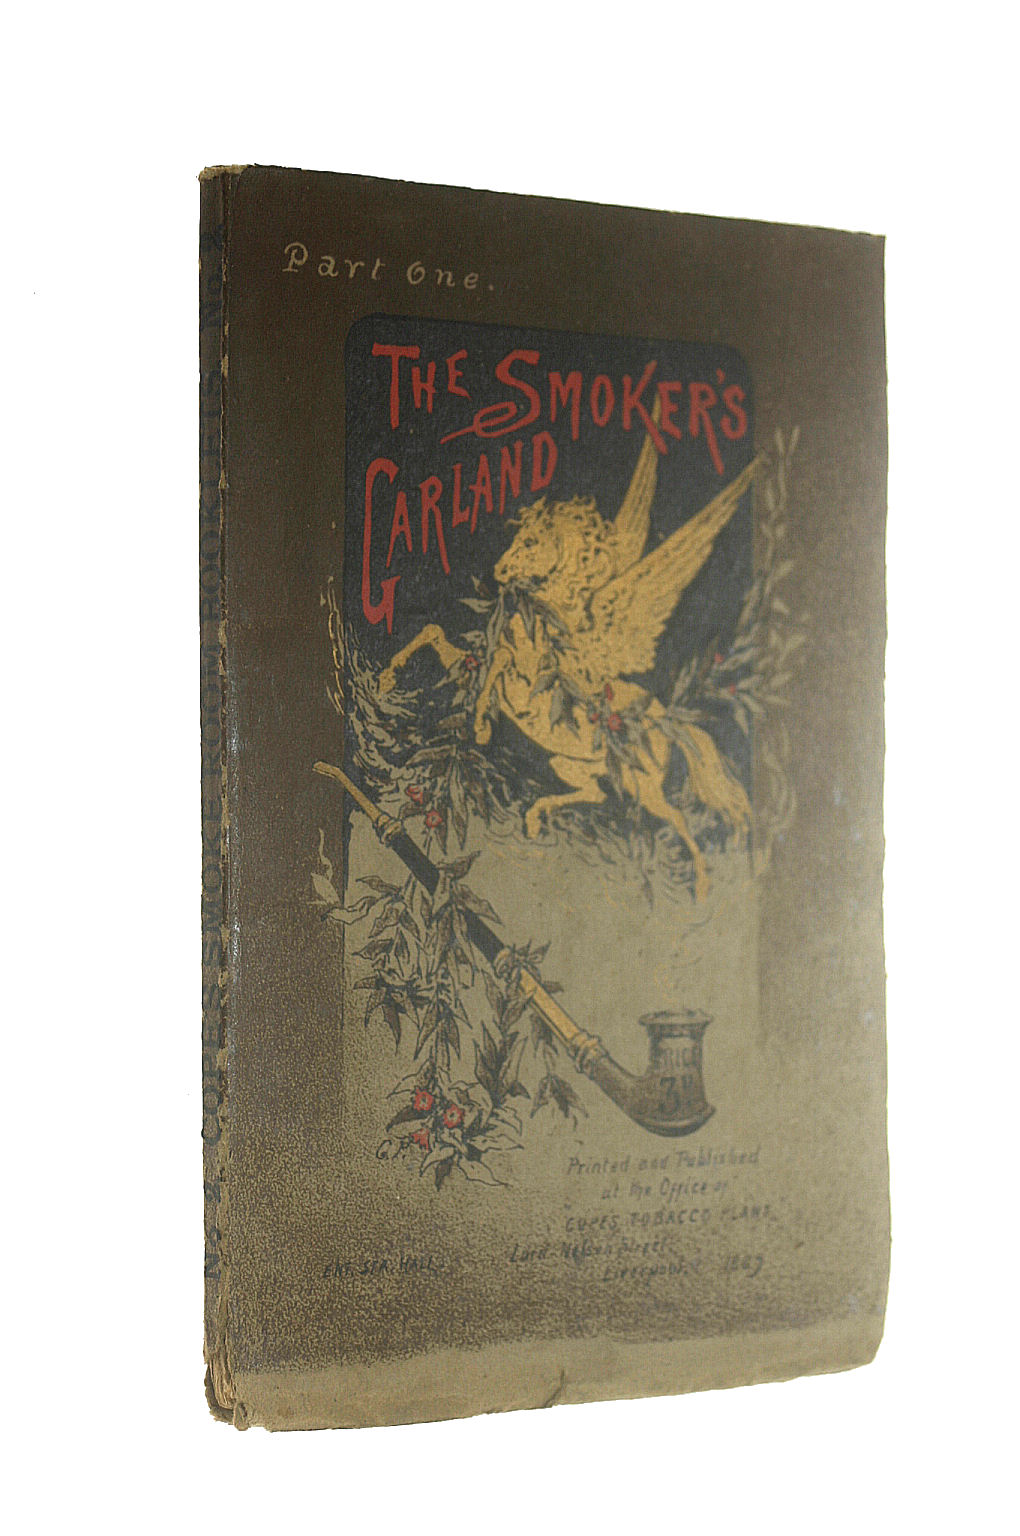 Image for The Smoker's Garland Part 1 Cope's Smoke Room Booklets No 2